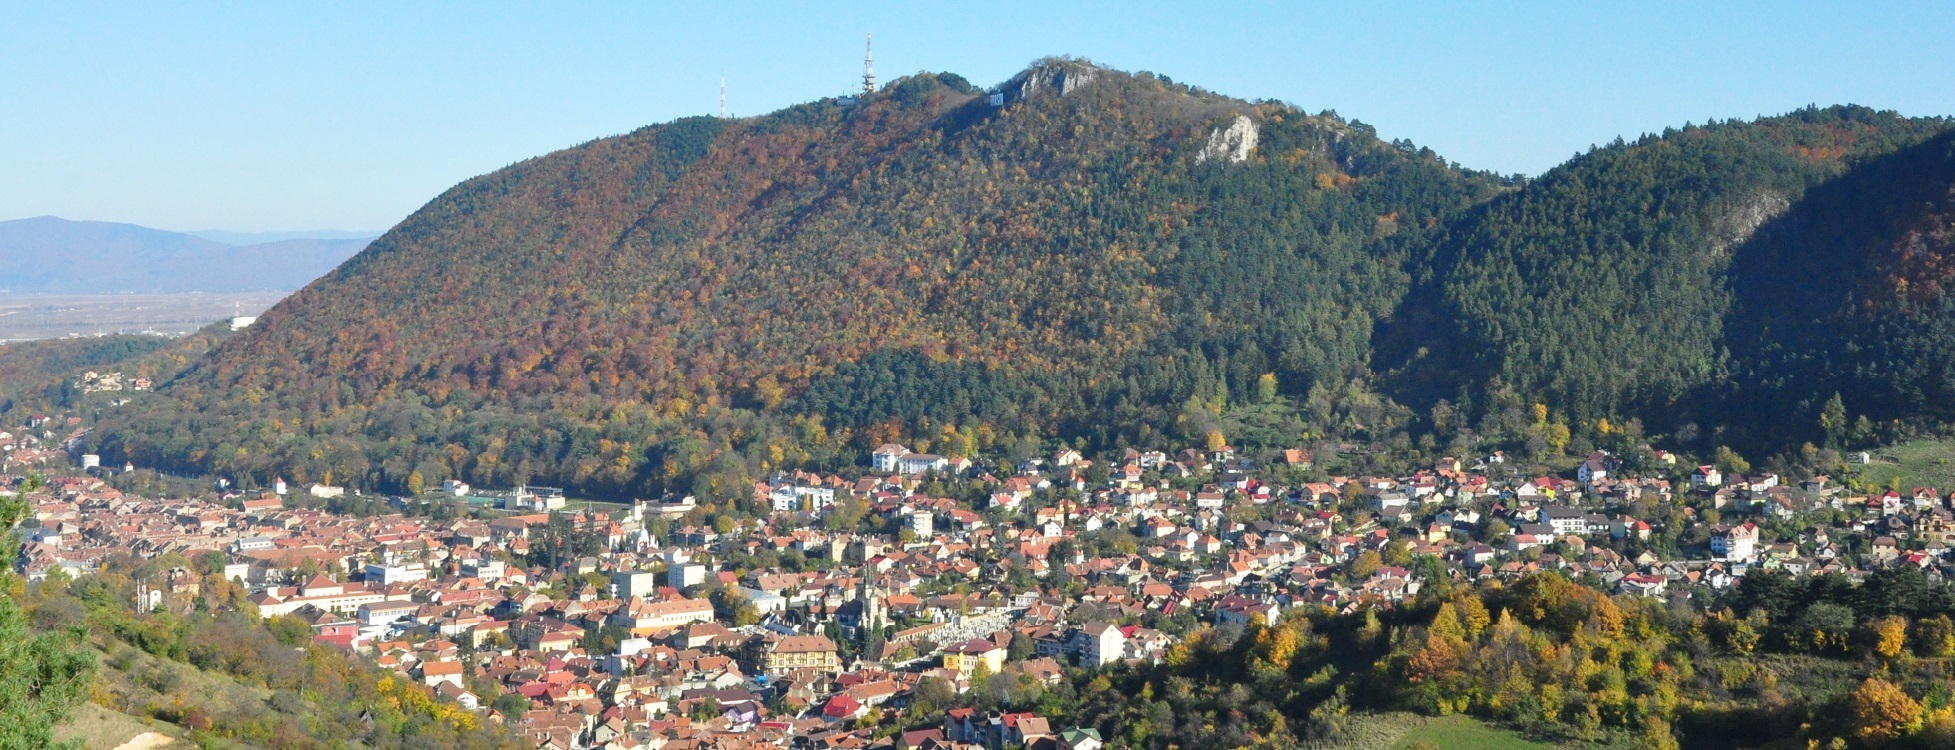 'RE-CALATORESTE' - Oferta speciala city break Brasov